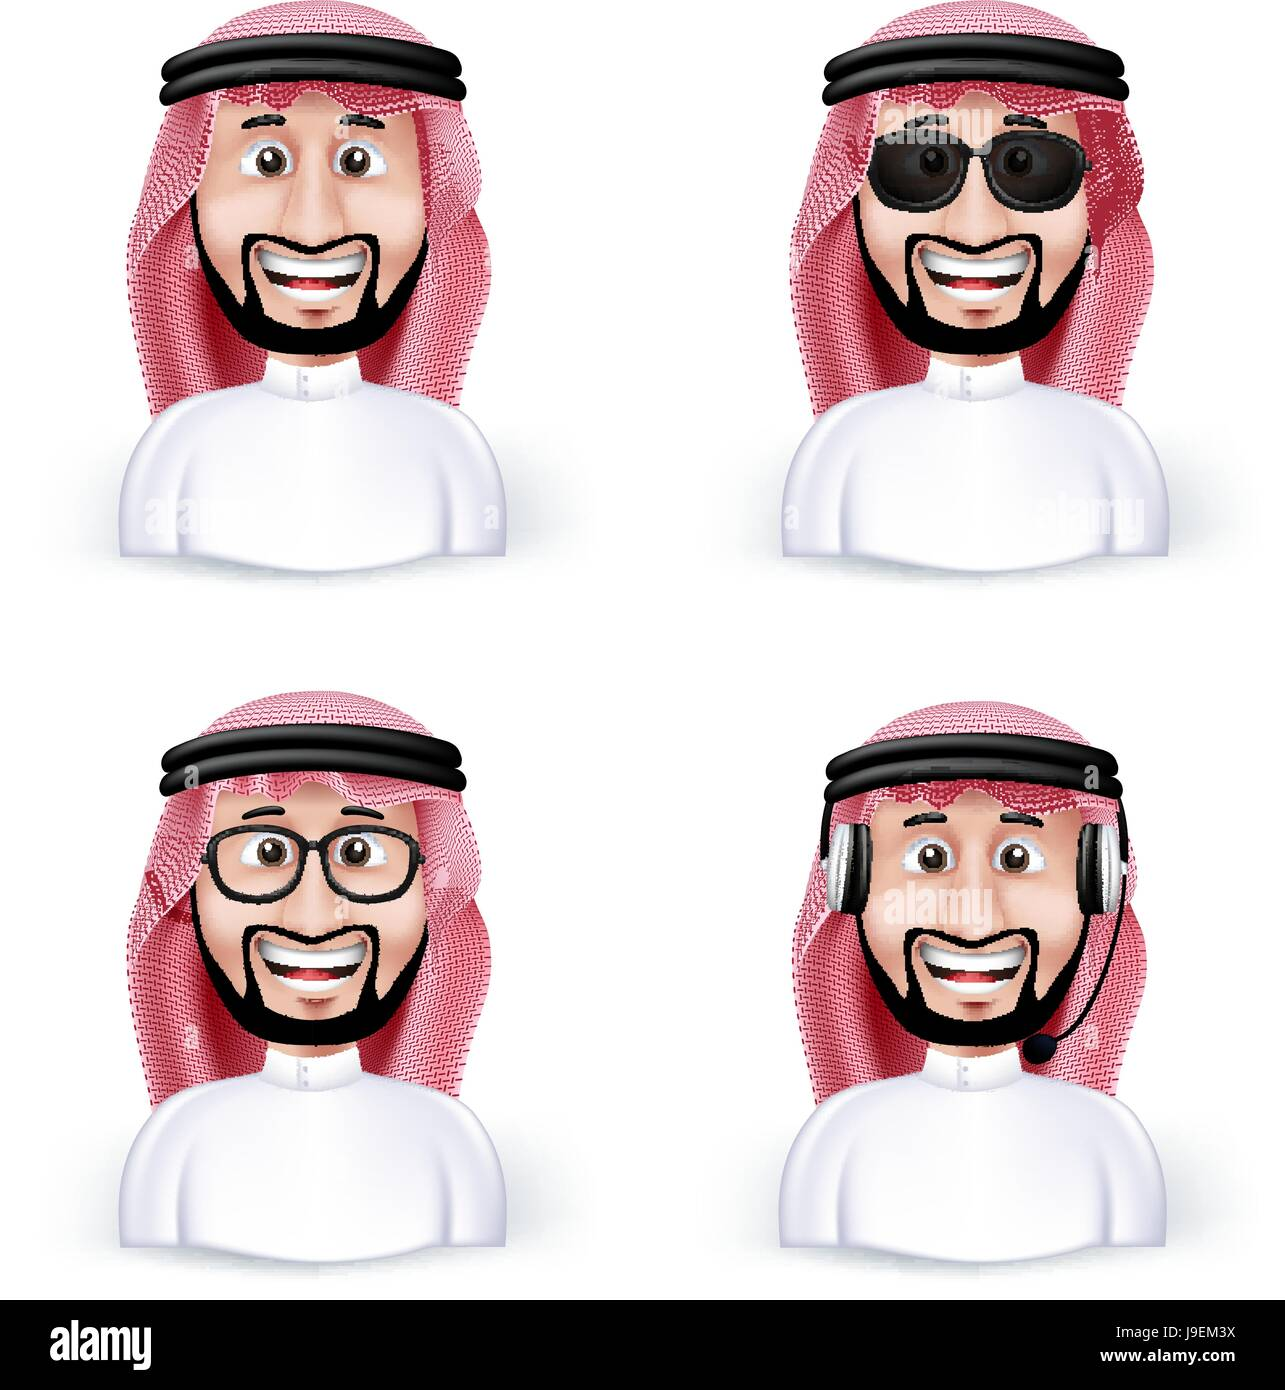 Set of Saudi Arab Man in Different Professional and Business Man Characters and Avatars in traditional Cloths or - Stock Image